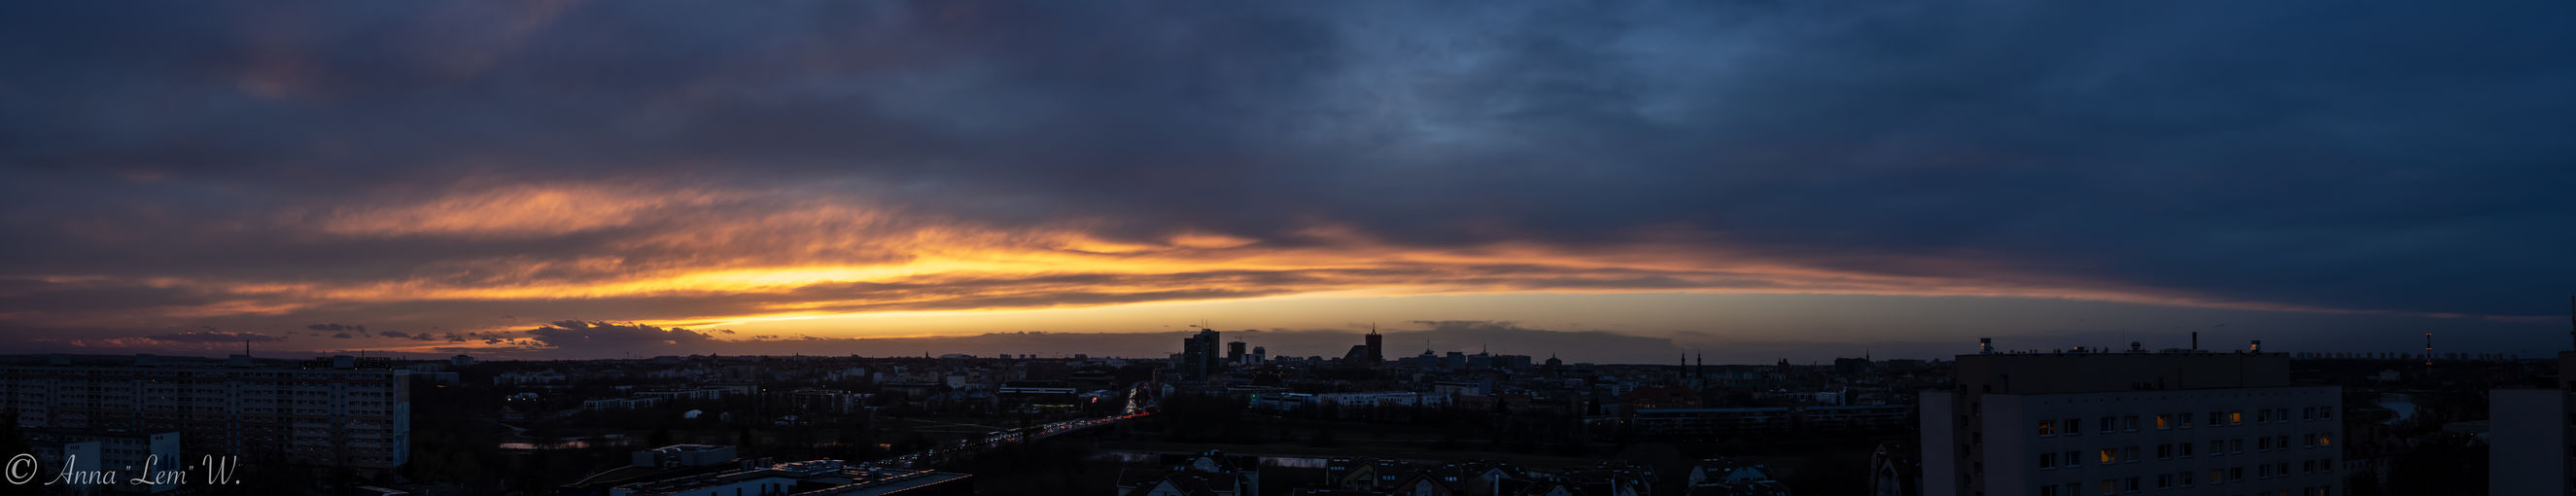 The last light in the city panorama. Architecture Cloud - Sky Building Exterior City Sunset Sky Cityscape Built Structure Building Dramatic Sky Nature Panoramic City Life High Angle View Urban Skyline No People Beauty In Nature Cloudscape Outdoors Dark Ominous The Week on EyeEm EyeEm Best Shots EyeEmNewHere Panorama